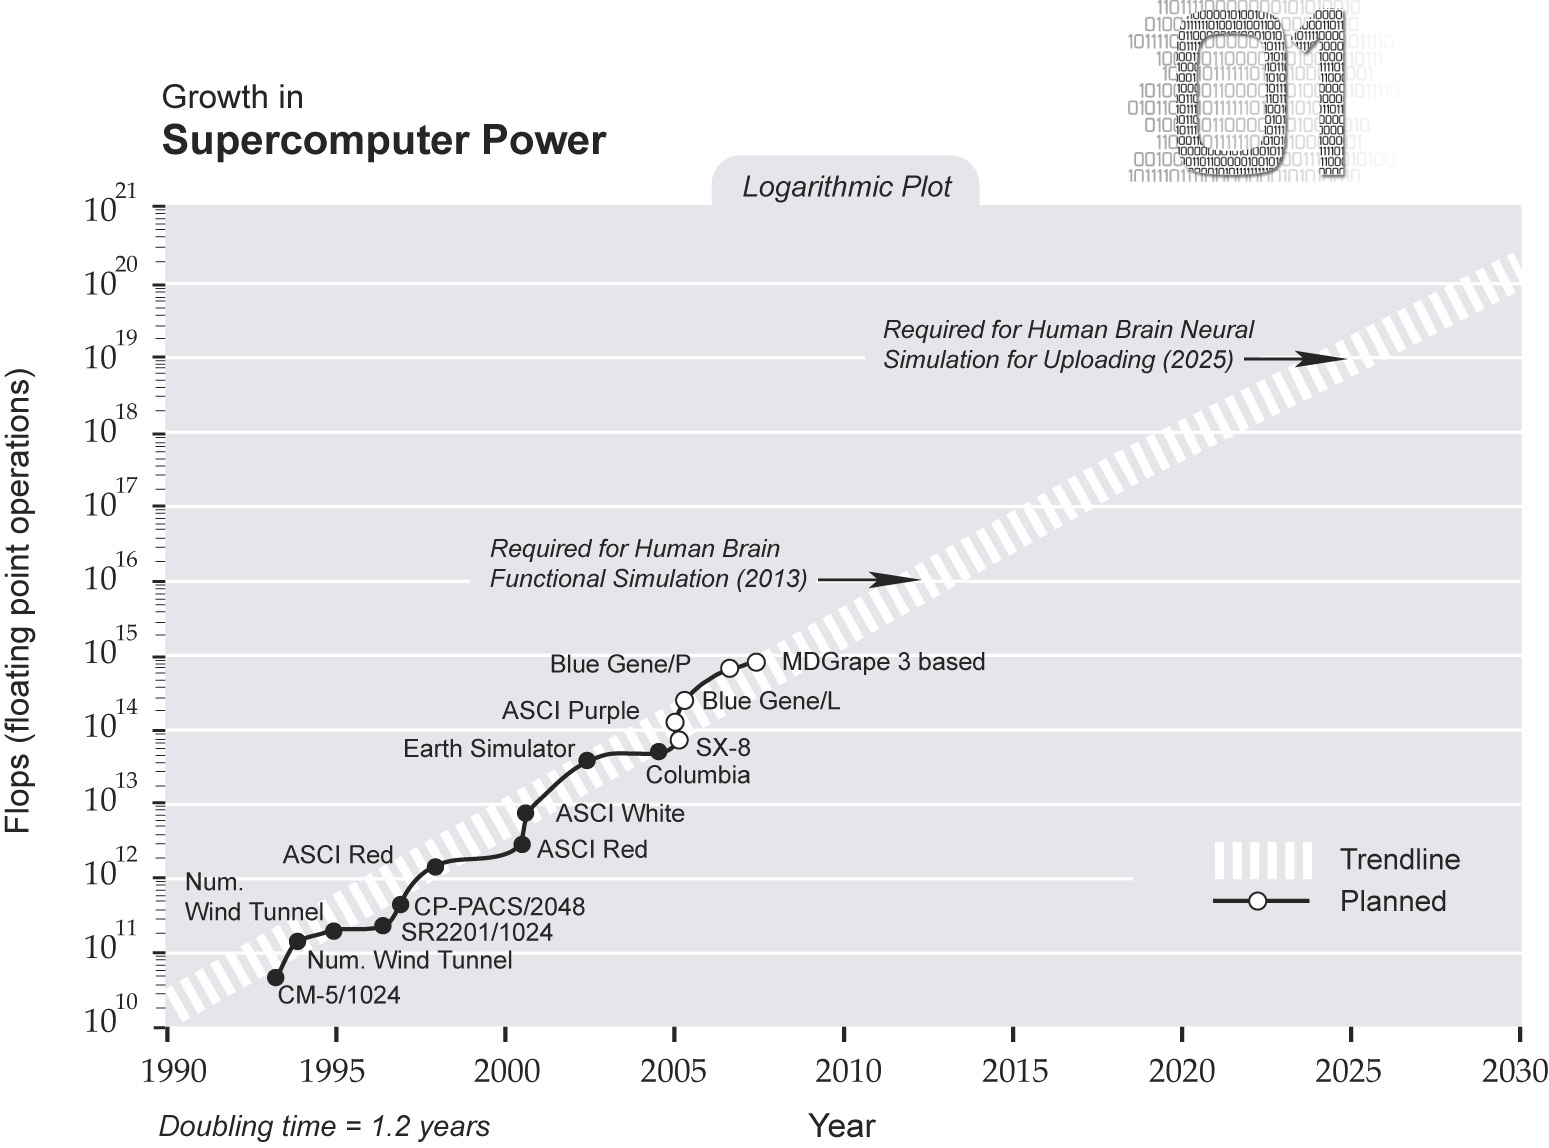 Supercomputer power